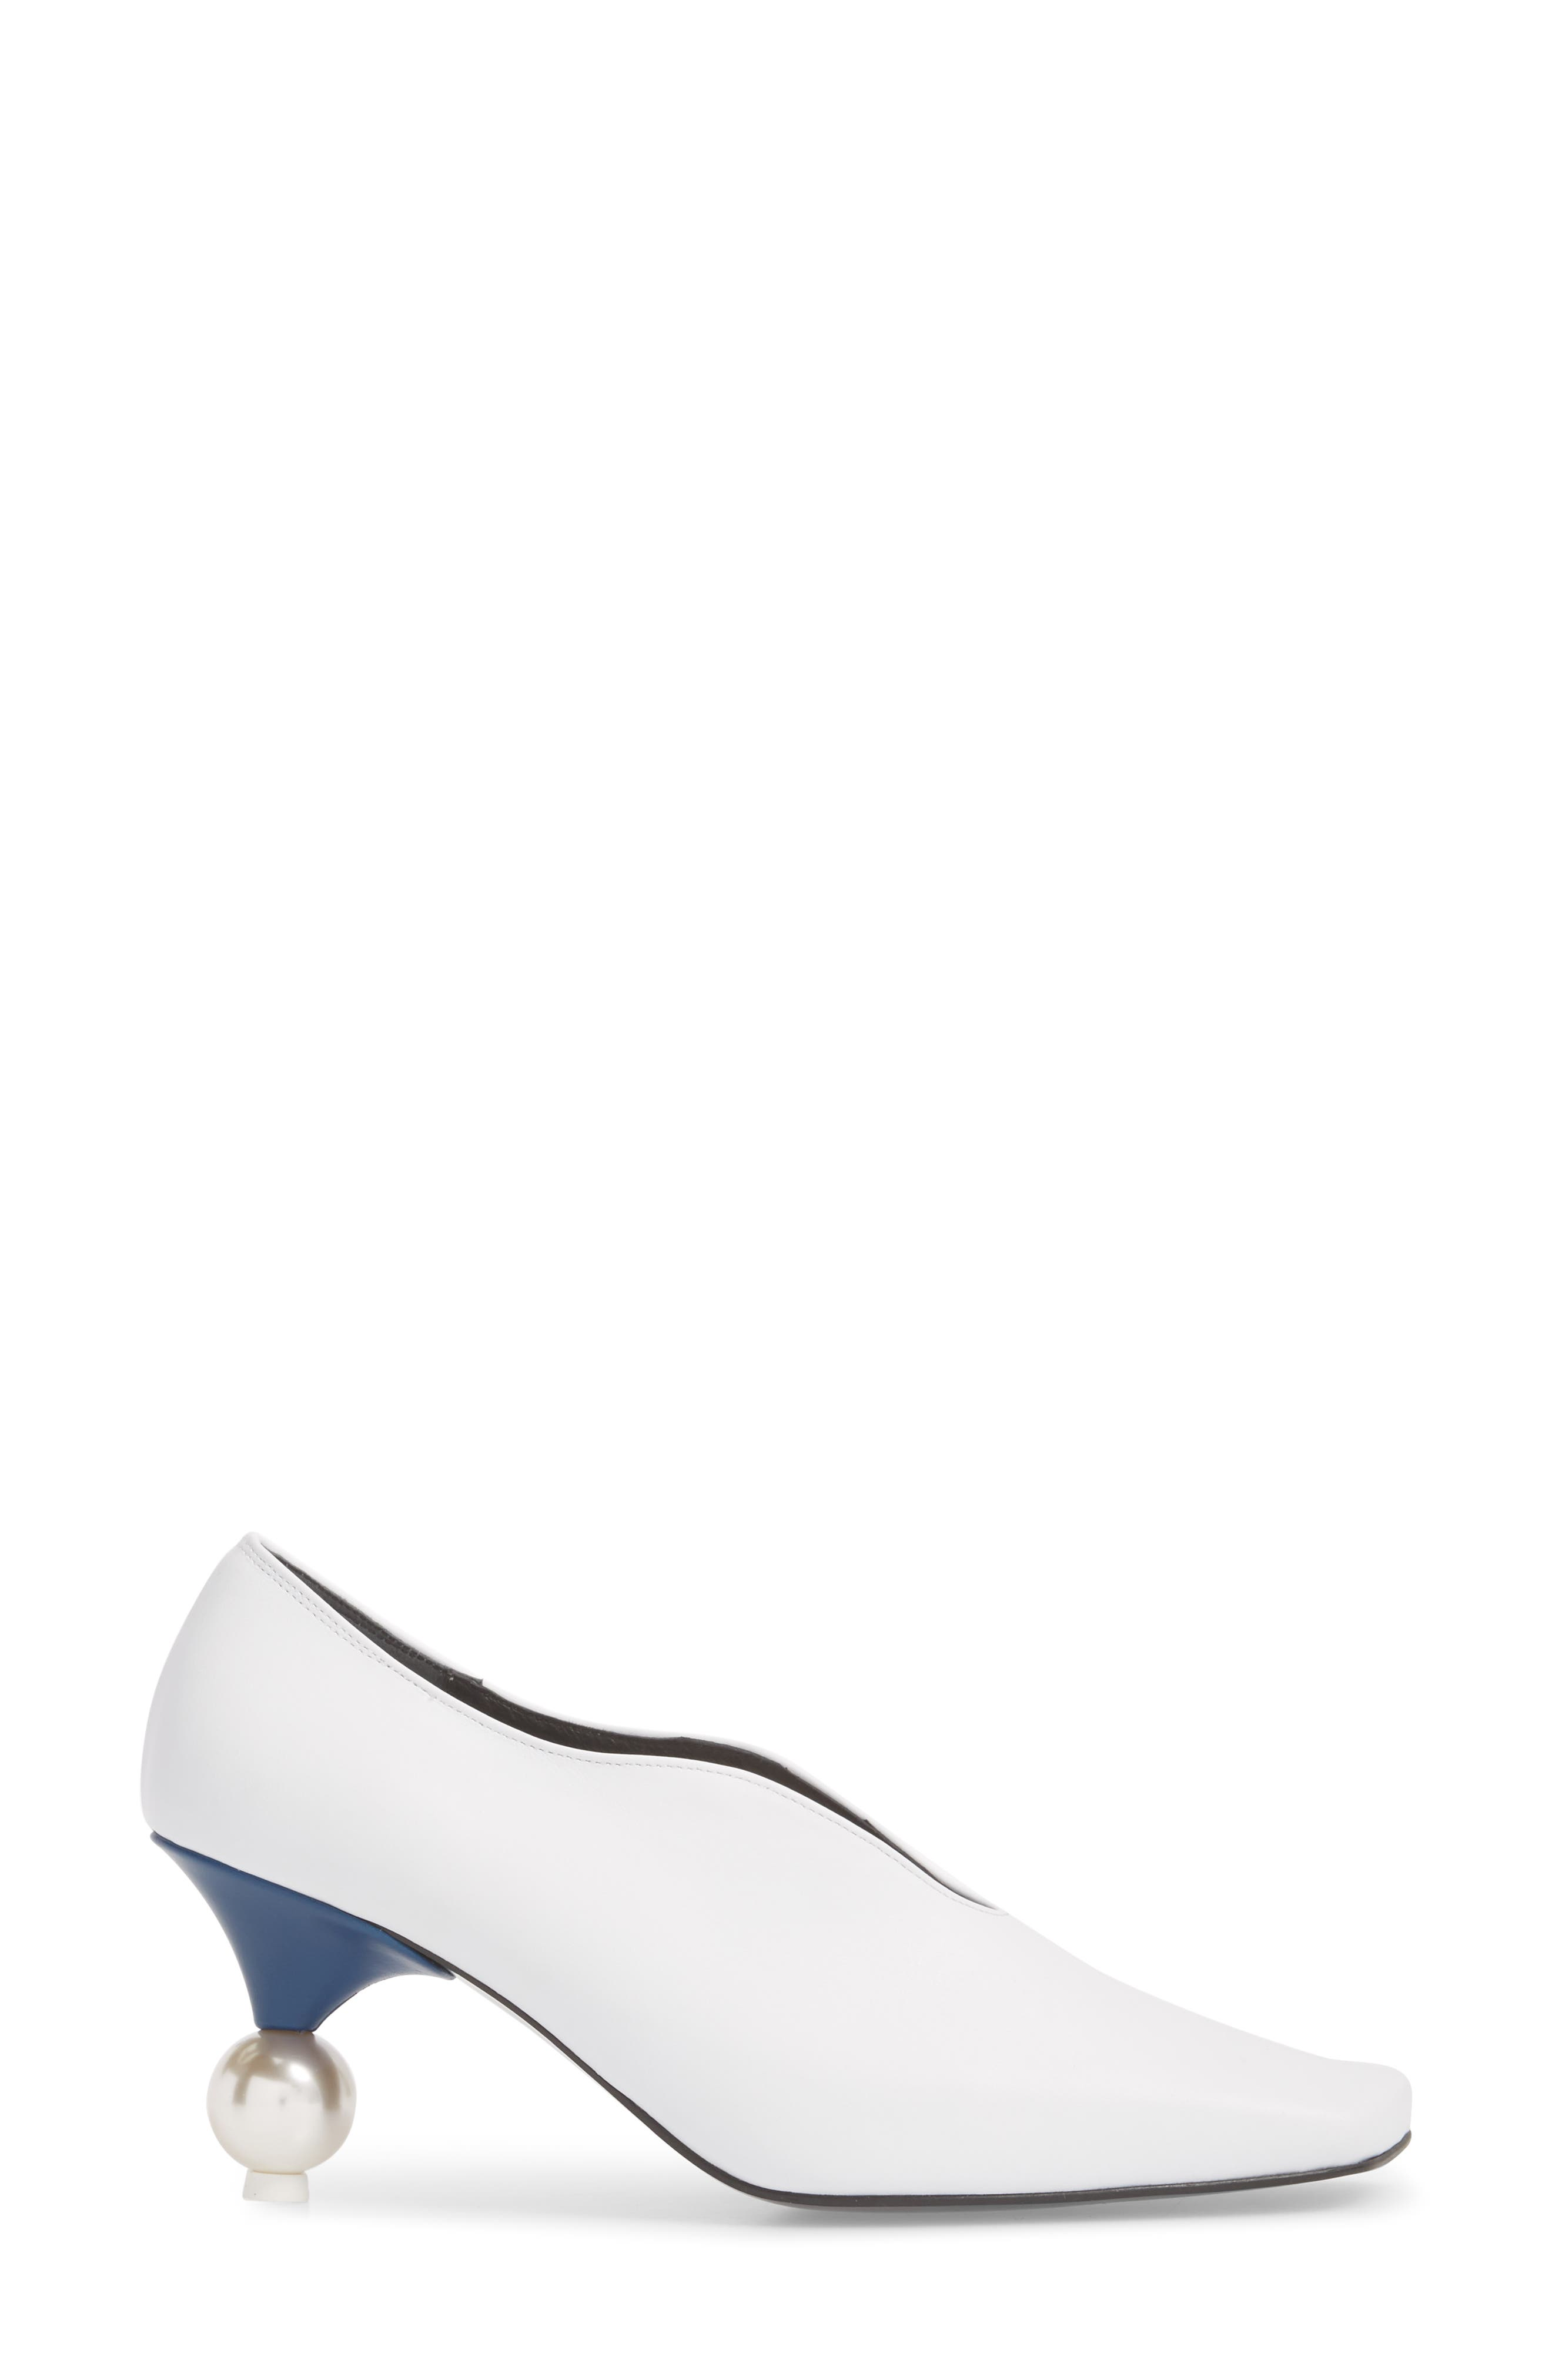 Statement Heel Pump,                             Alternate thumbnail 3, color,                             White/ Navy